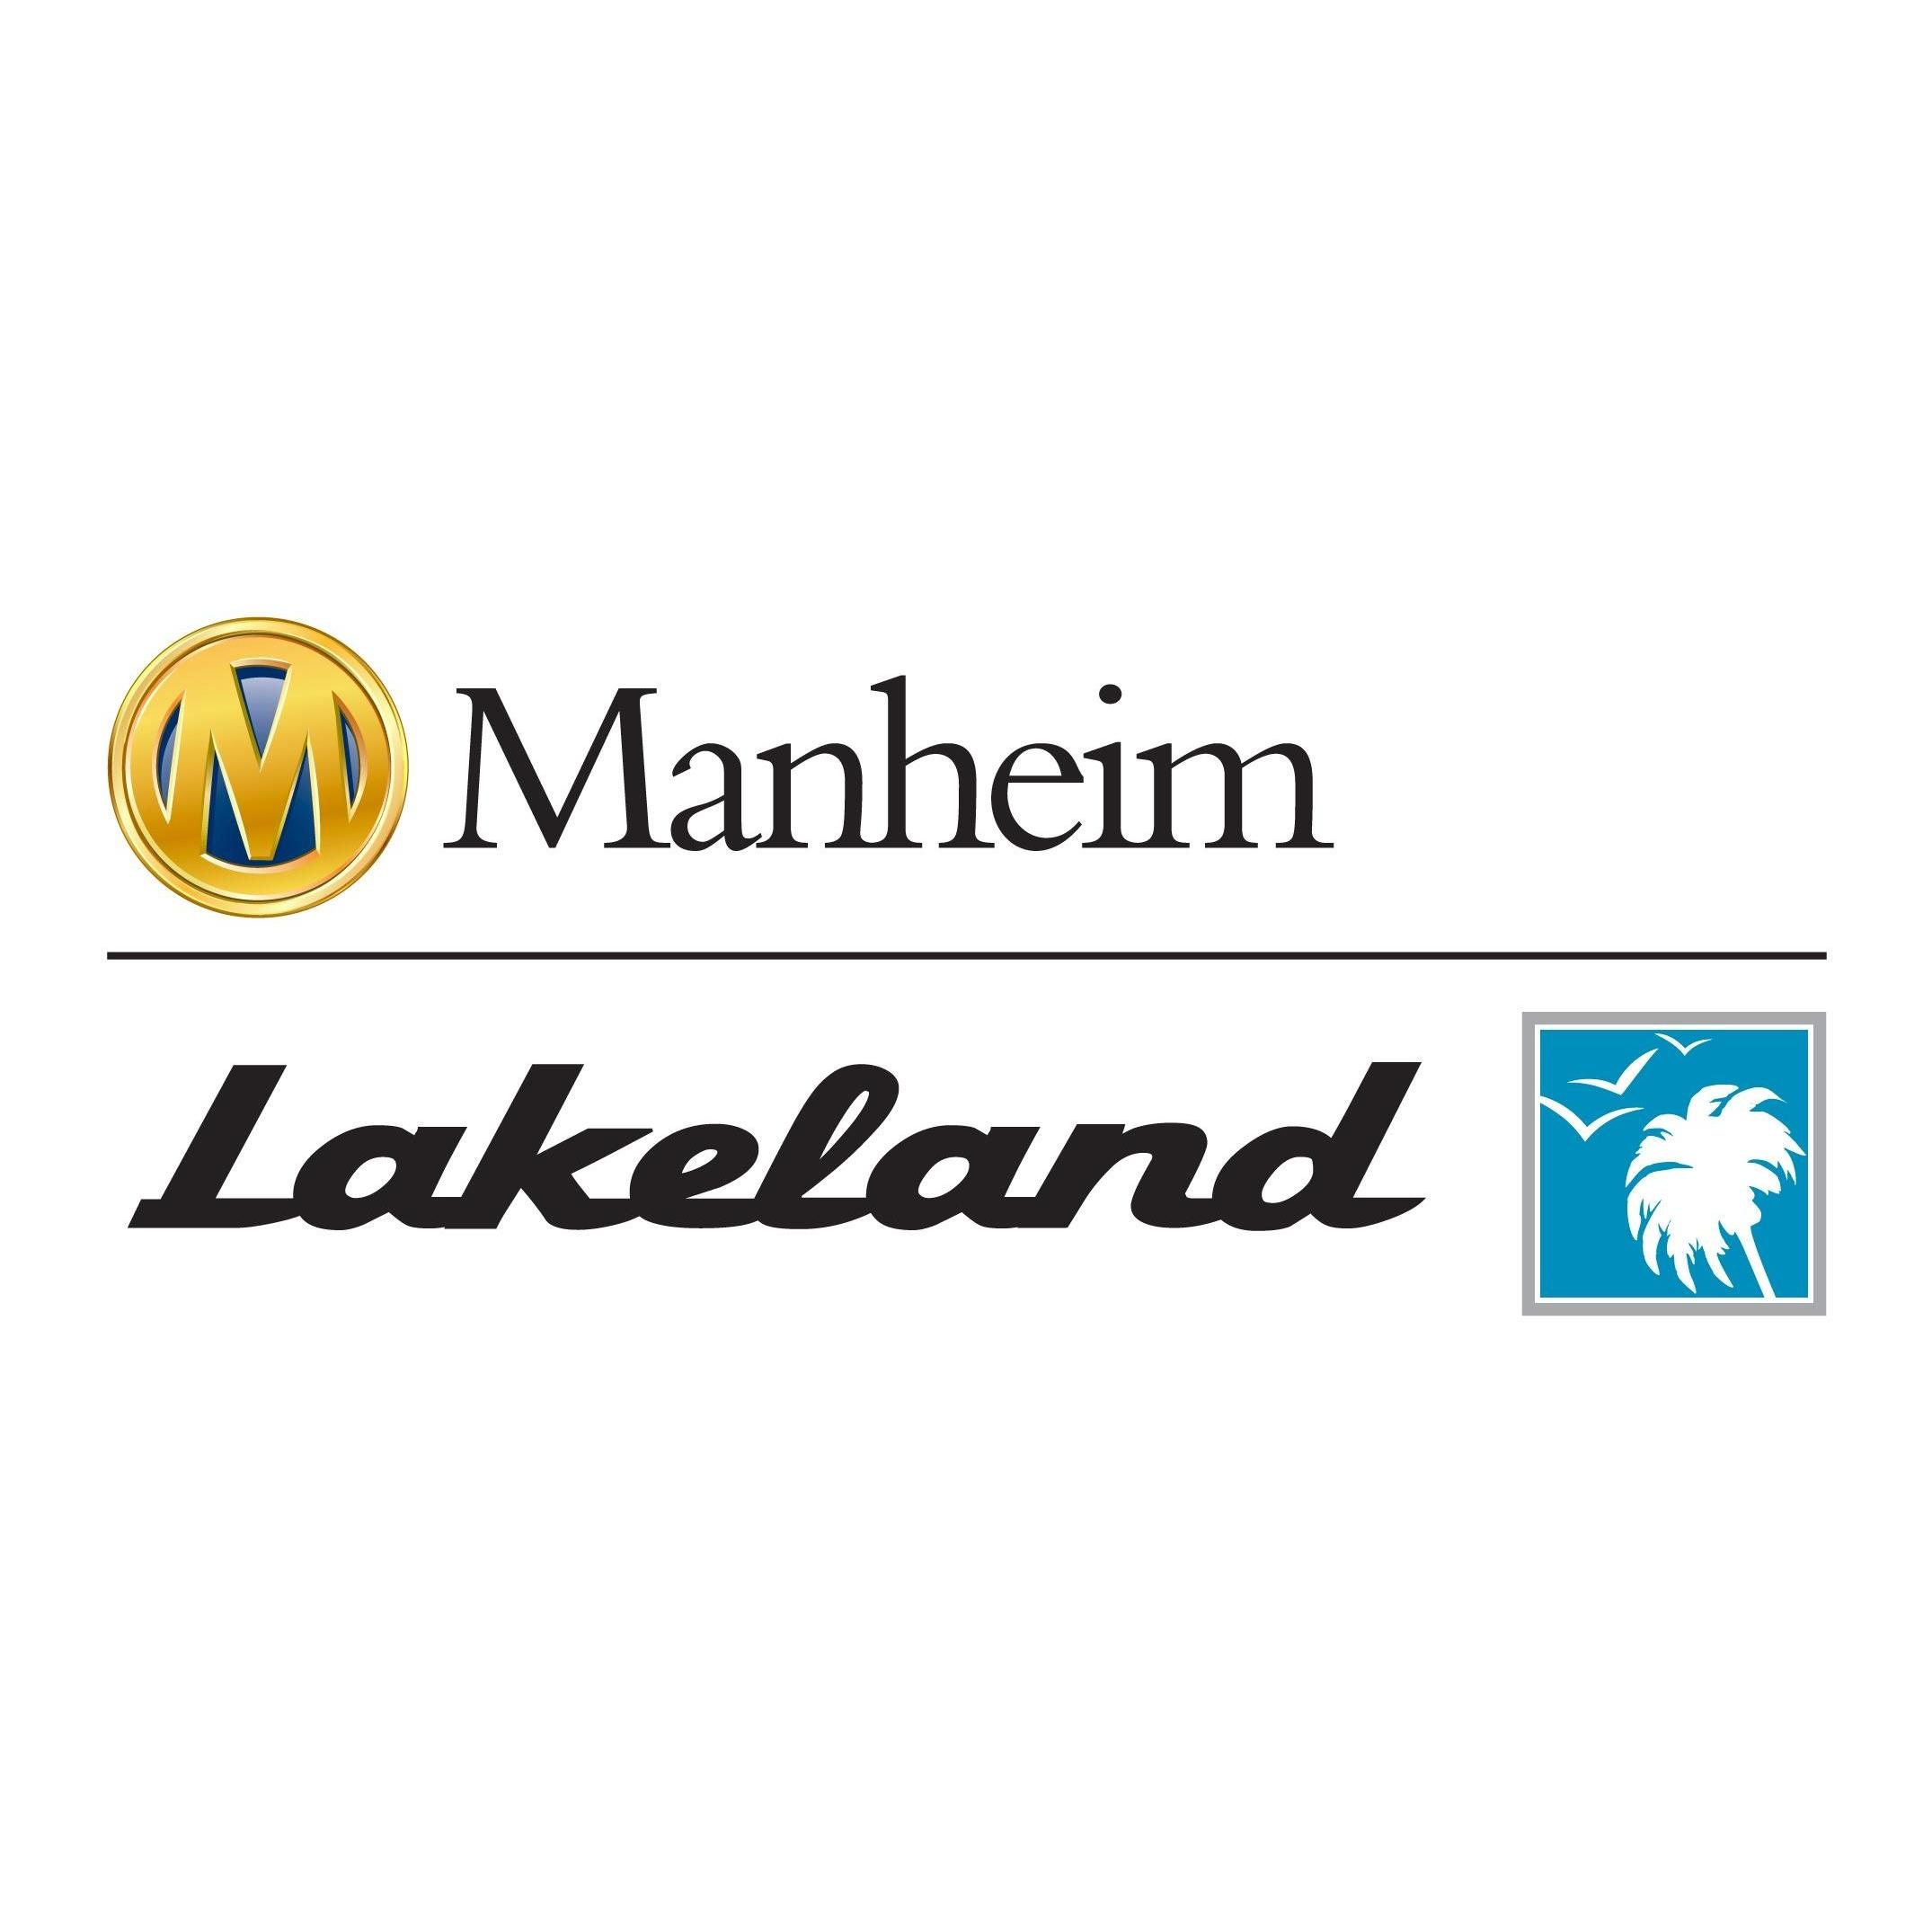 Manheim Lakeland